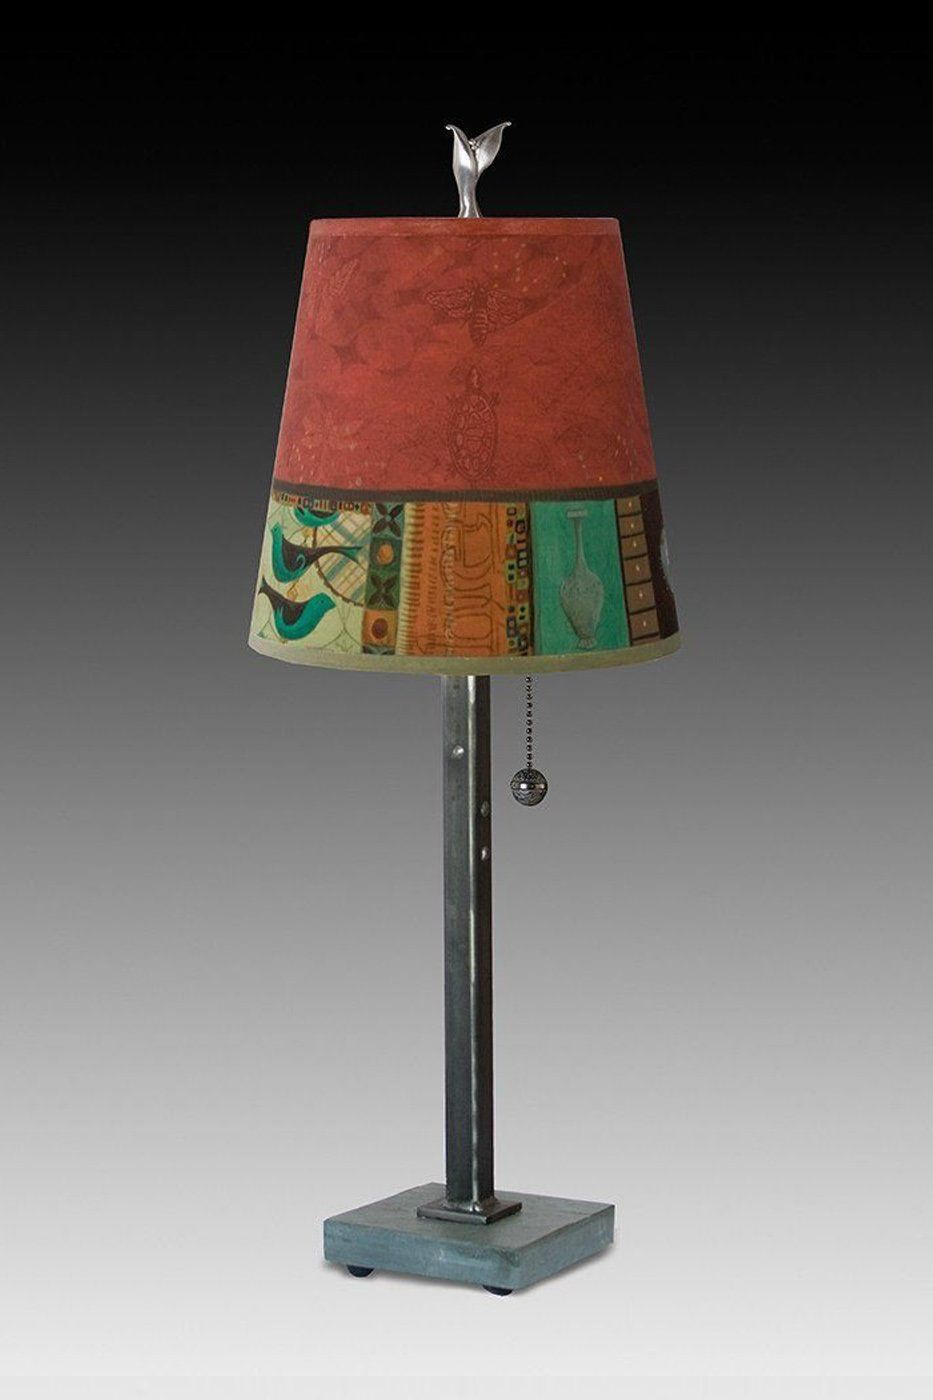 Steel Table Lamp on Vermont Slate Base with Small Drum Shade in Red Match